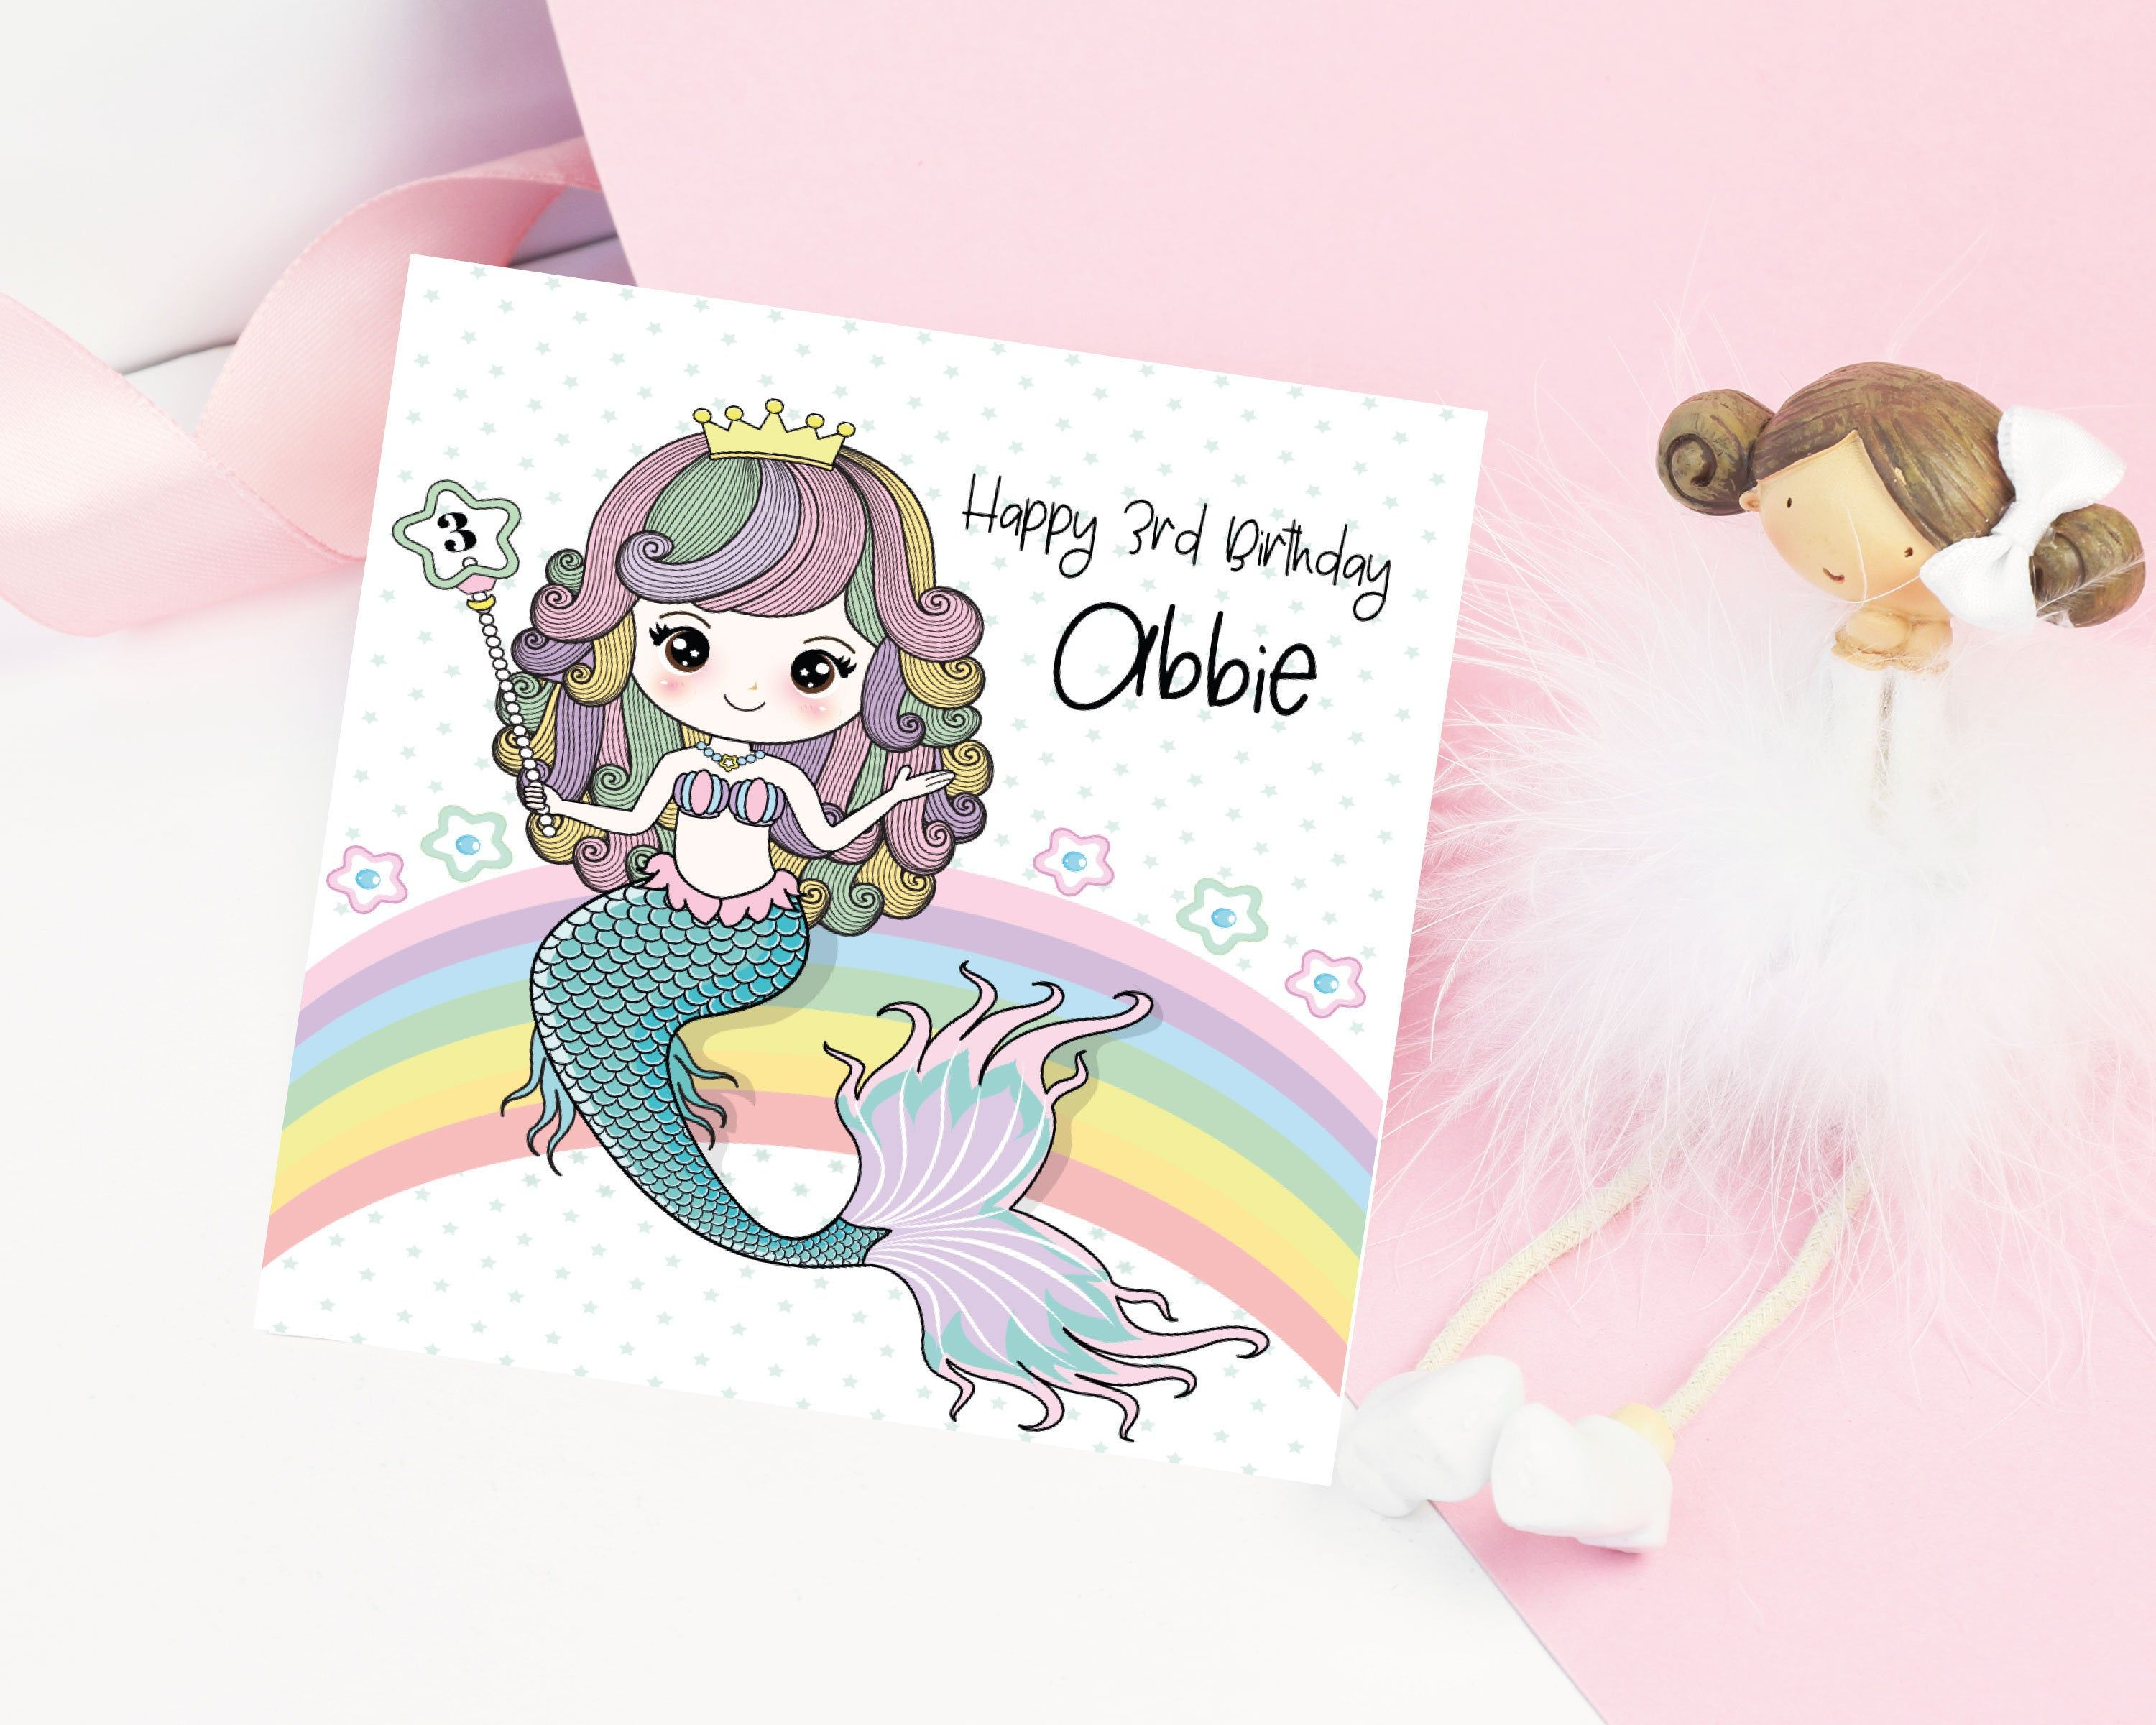 Birthday Card With Mermaid Personalised With Age And Name Etsy First Birthday Cards Birthday Card With Name Personalized Birthday Cards